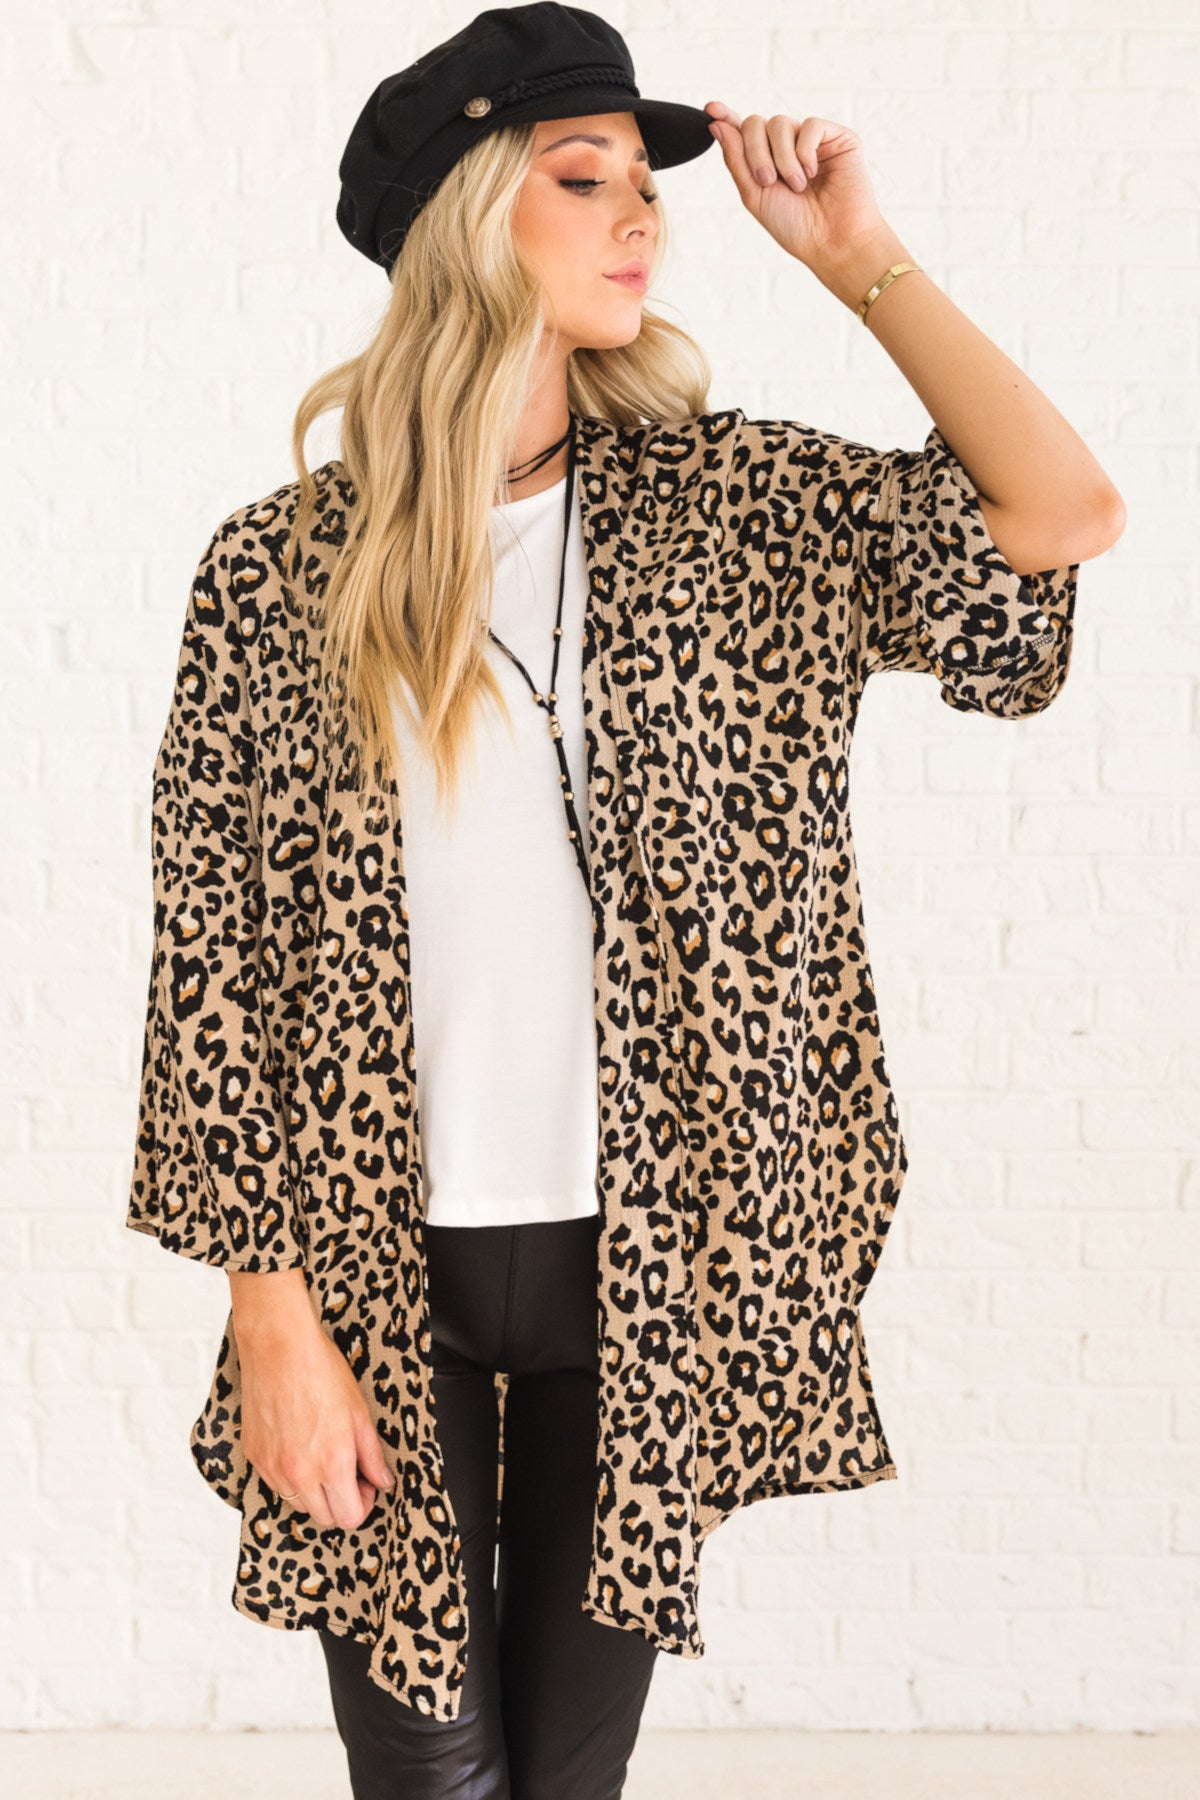 Leopard Print Boutique Kimono with Open Front and Flare Sleeves for Layering